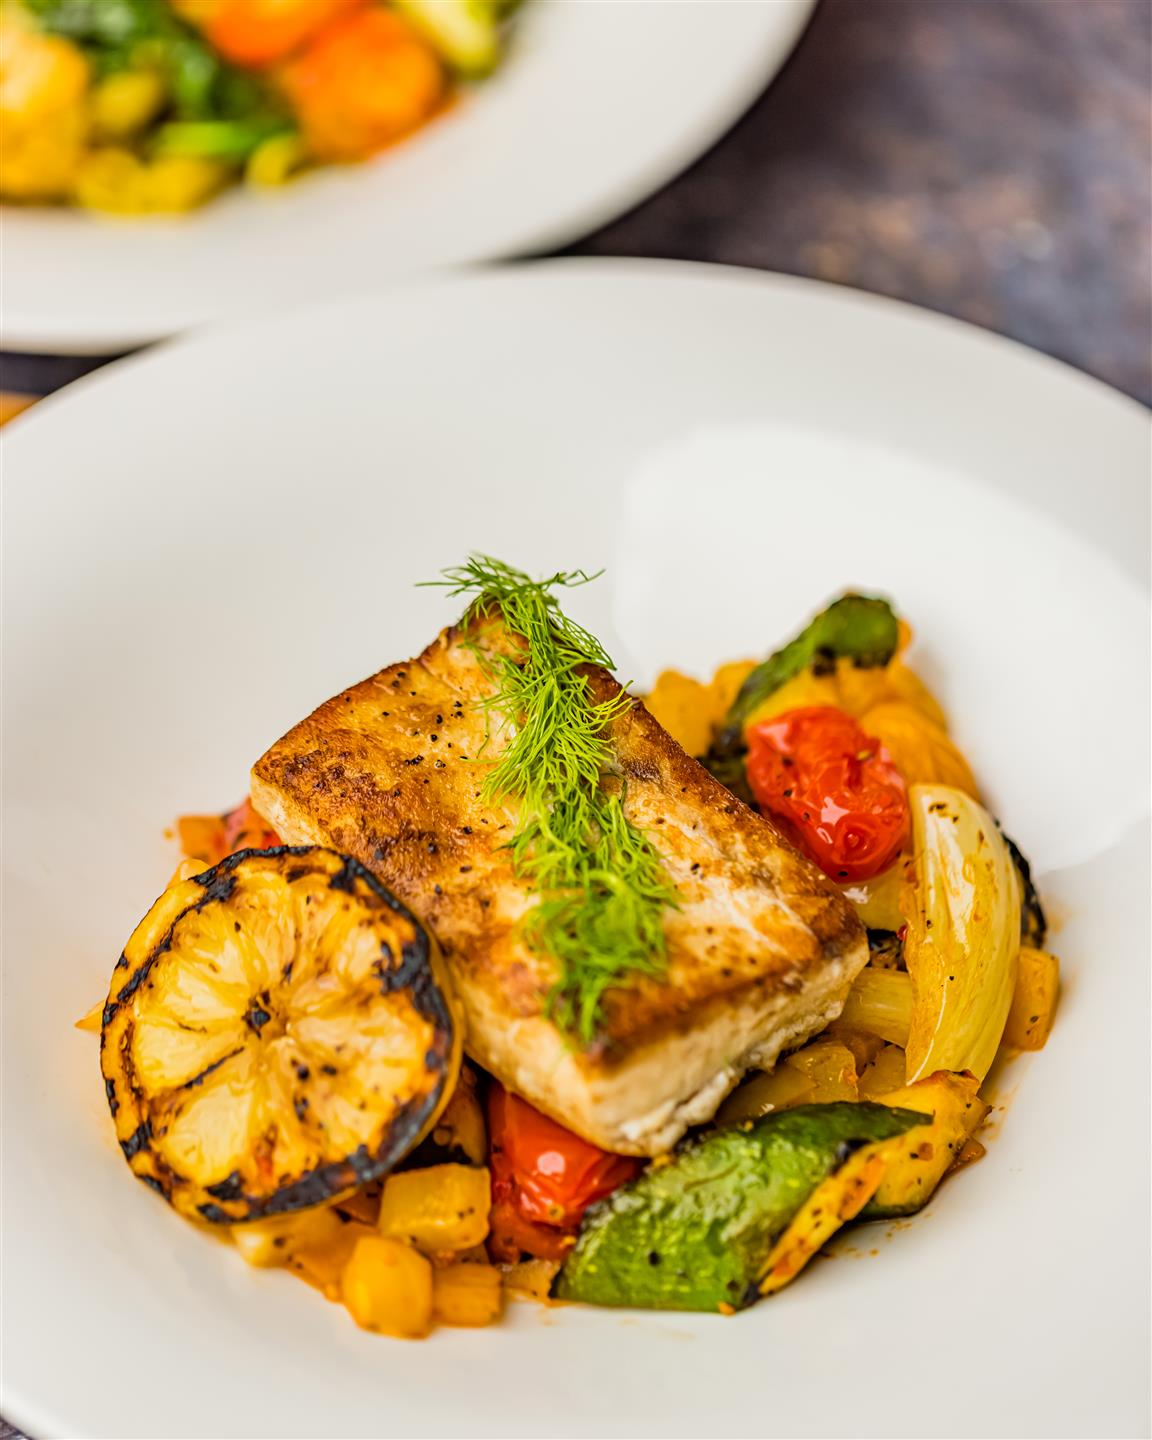 Fish on a plate with mixed veggies underneath and a half sliced lemon